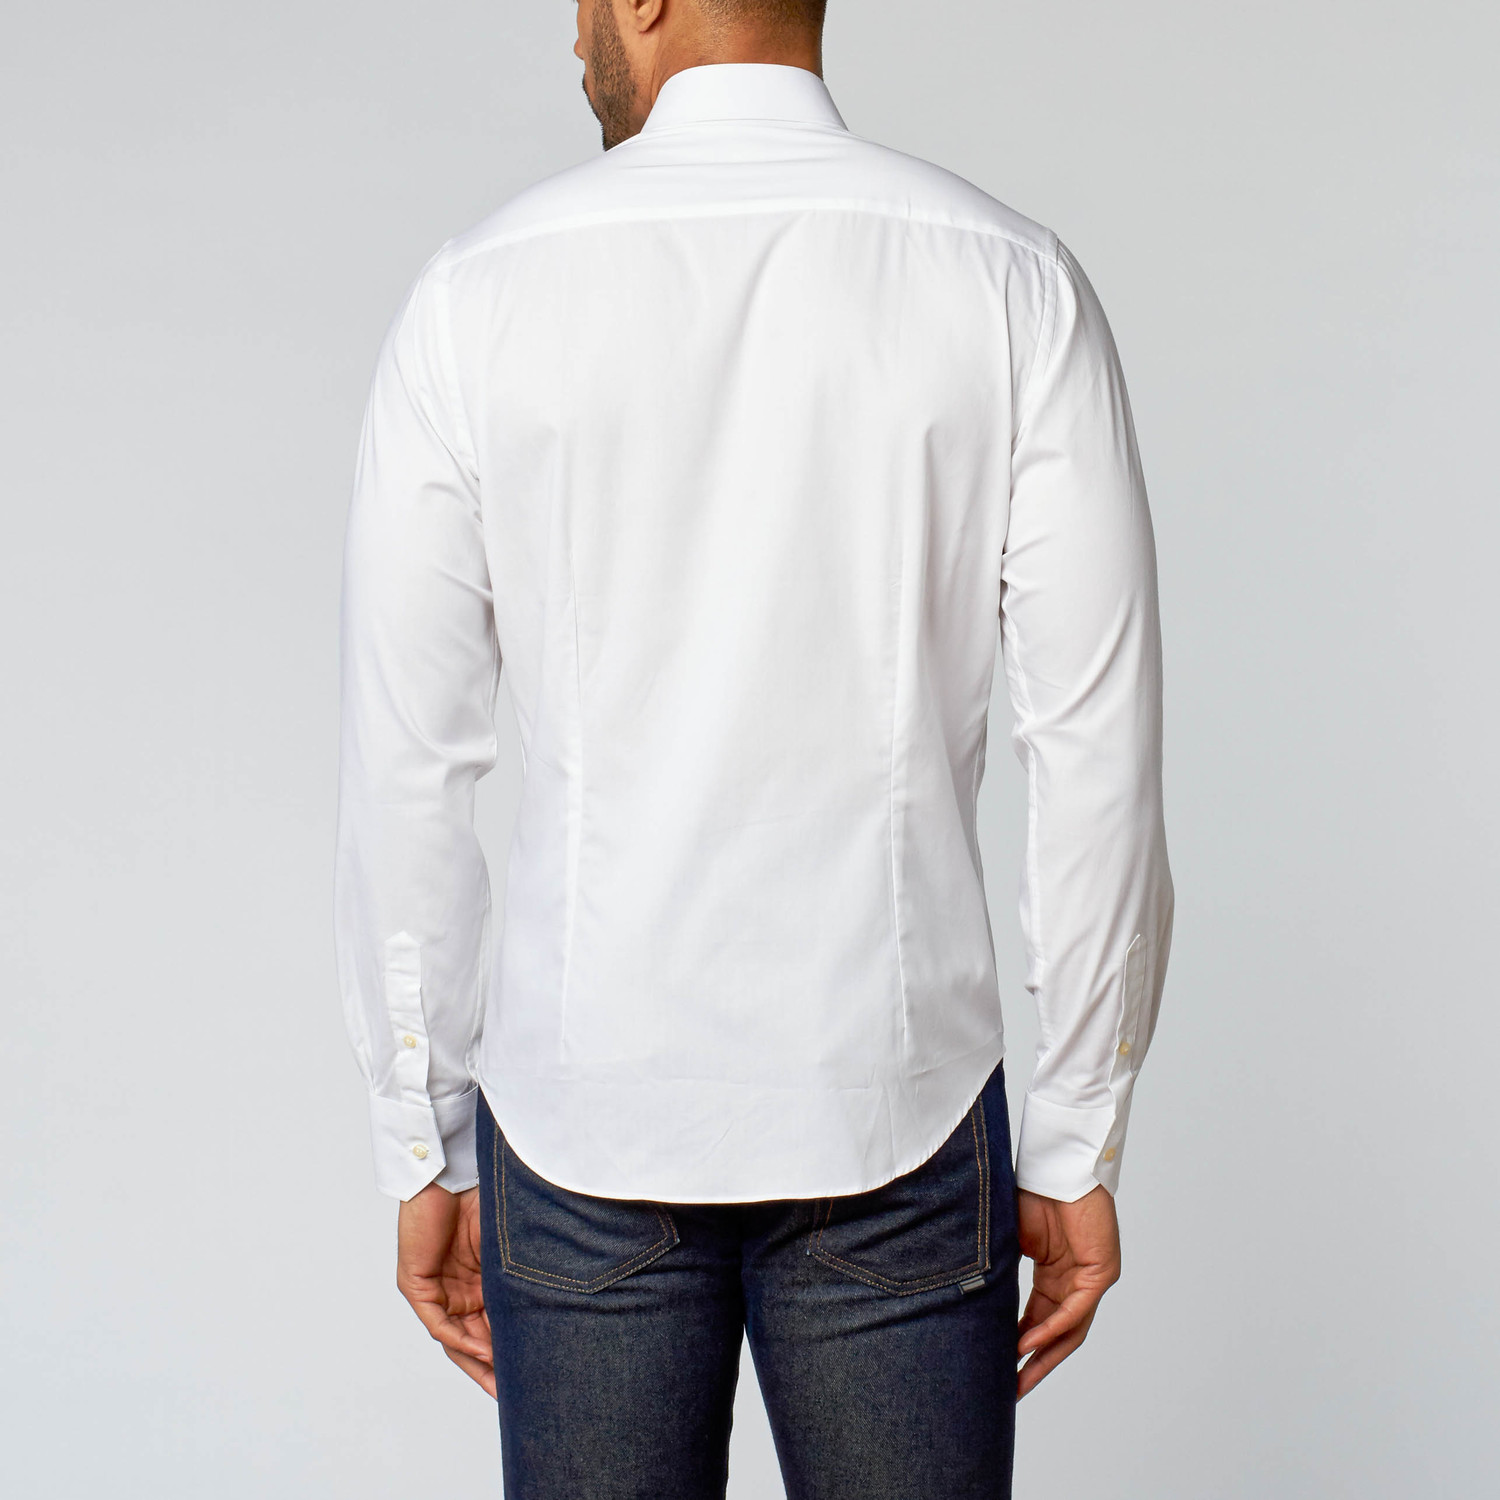 Button down shirt heavy weight white us 38 for Heavy button down shirts